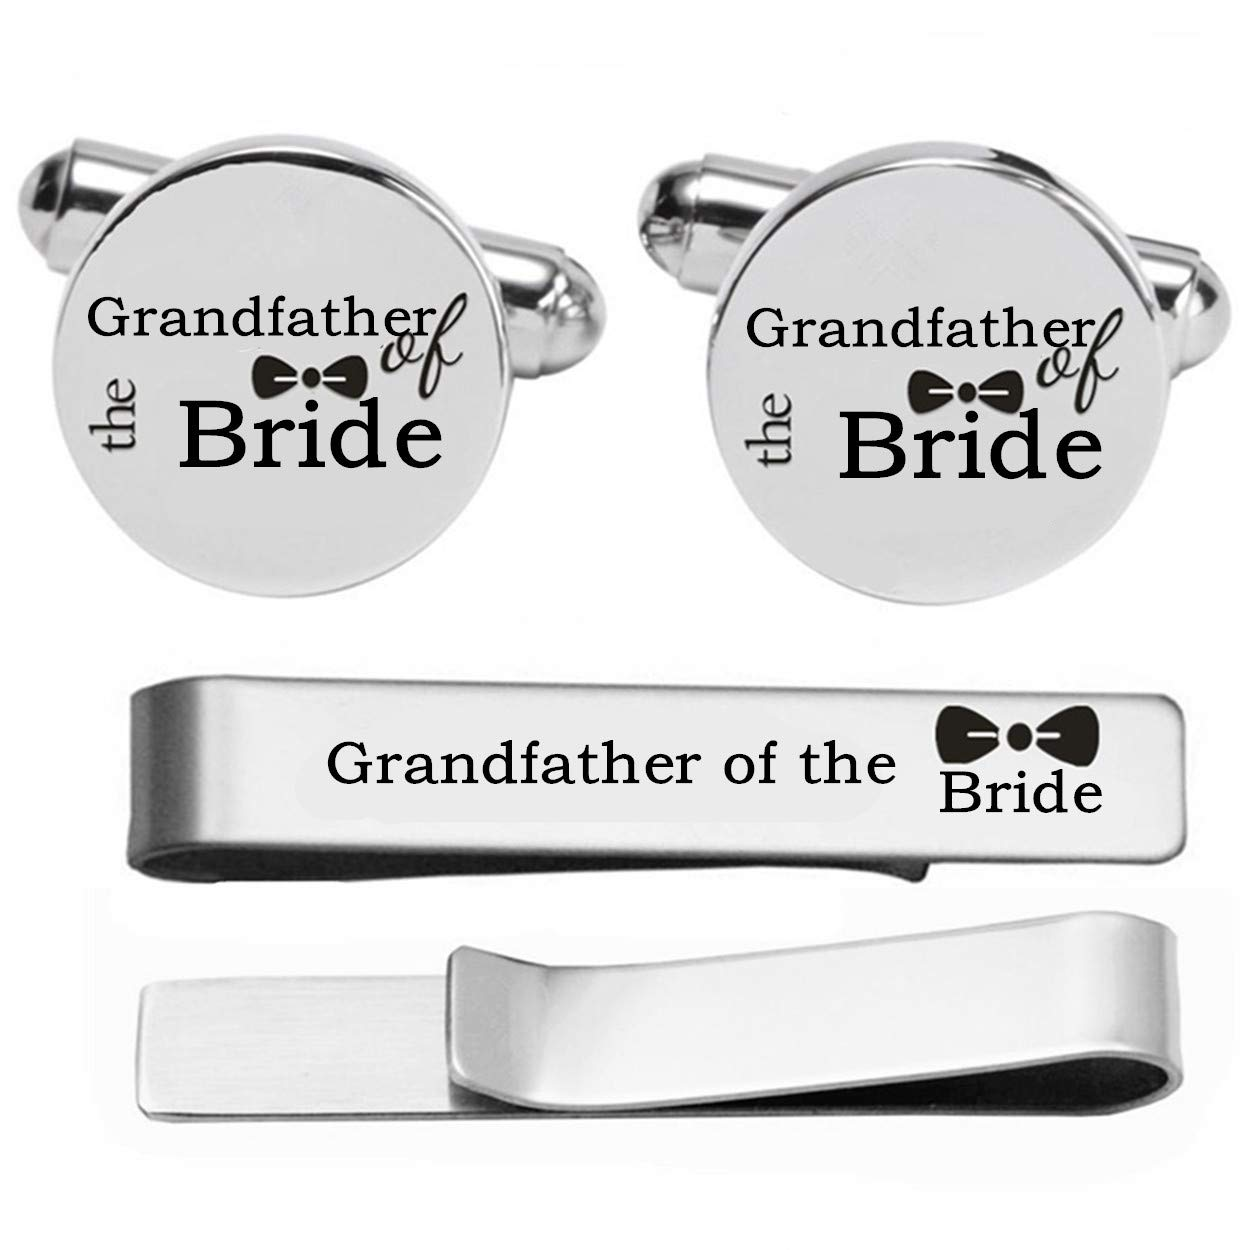 Kooer Custom Personalized Wedding Engraved Cuff Links Tie Clip Set Engrave Wedding Cufflinks Jewelry Gift (Grandfather of The Bride Set) by Kooer